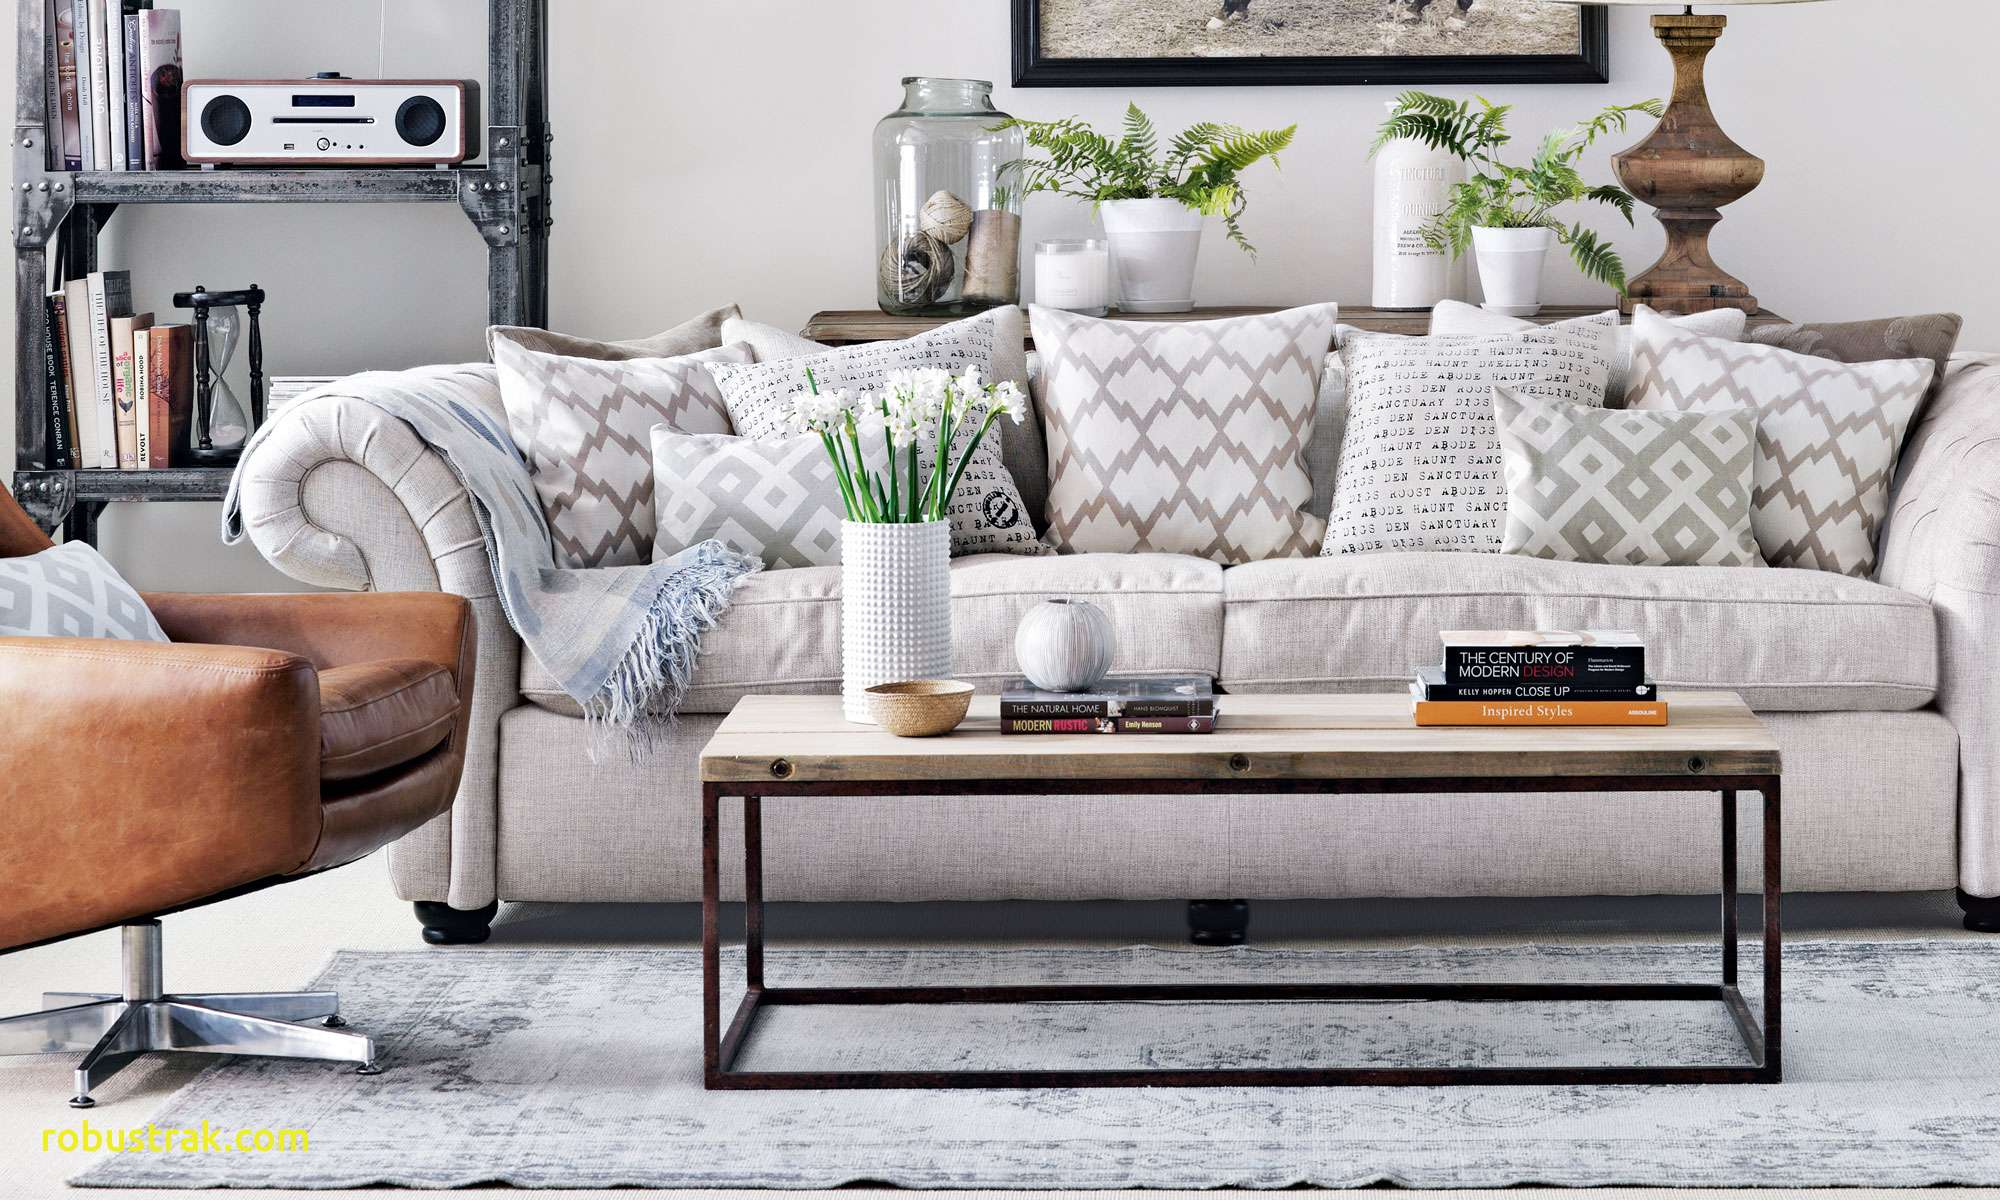 two coffee tables living room inspirational accent amp ceiling light white wall panel wood chrome table very narrow sams patio furniture clearance small nightstand green metal